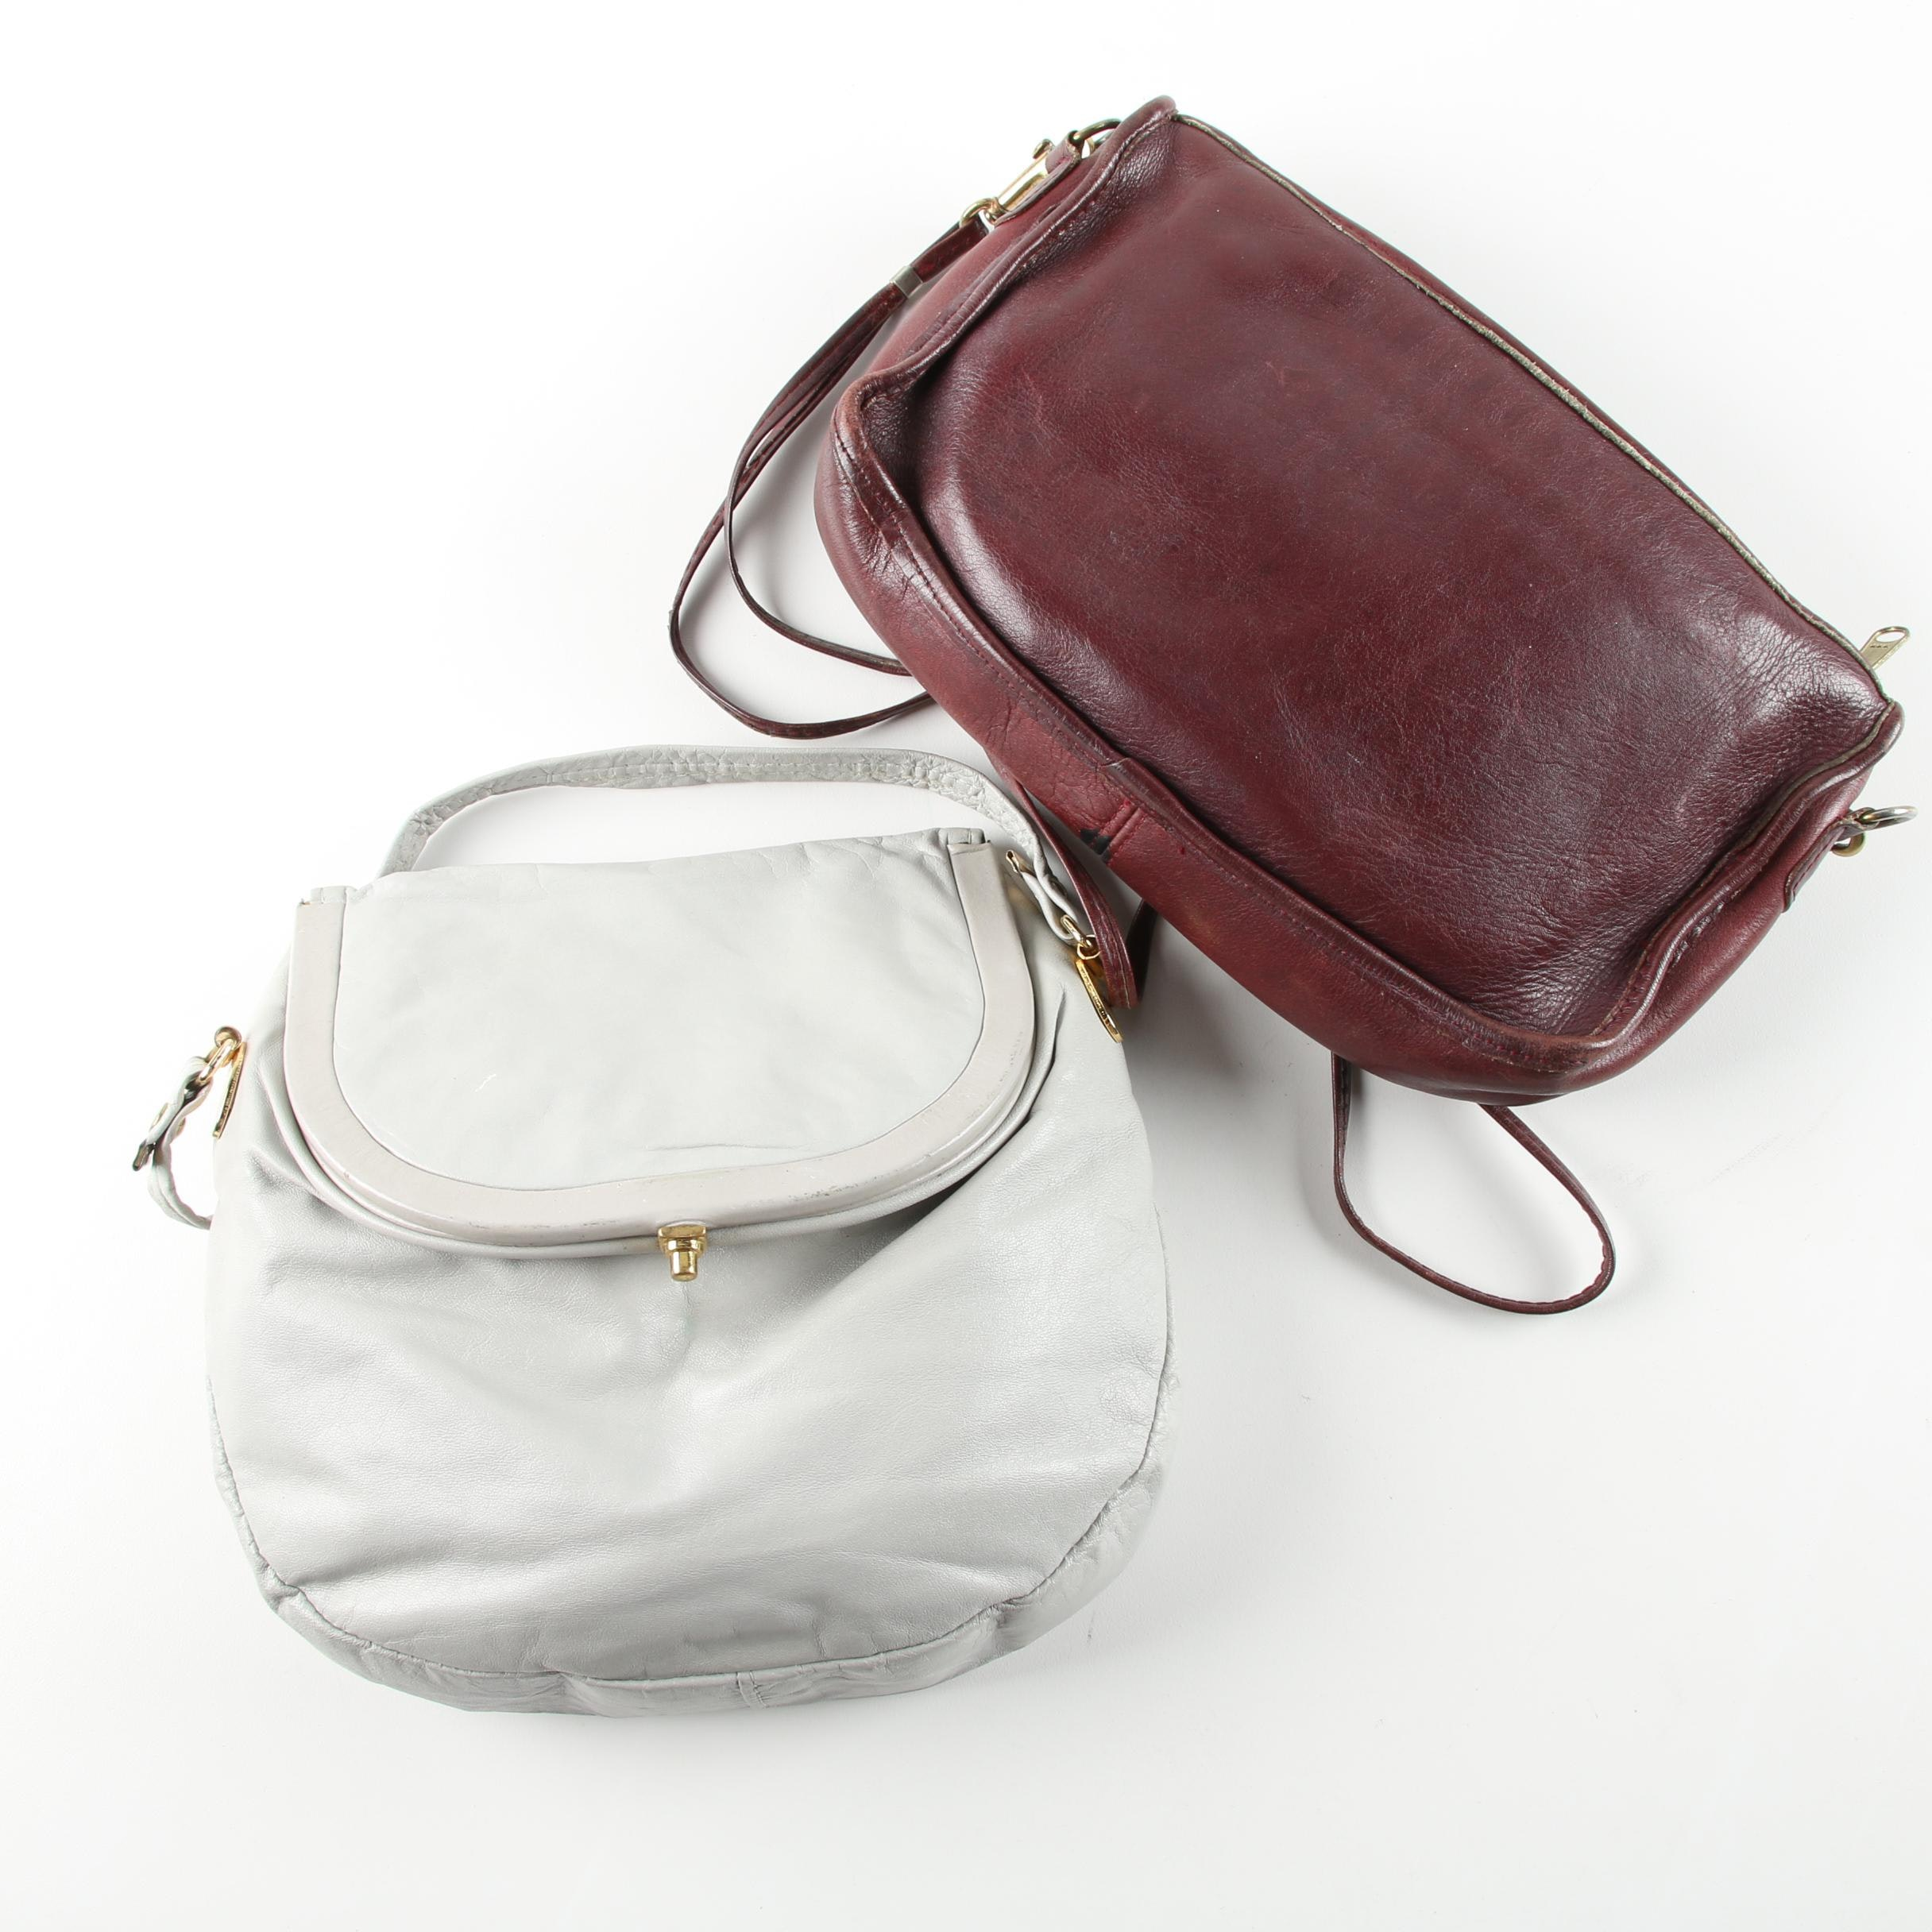 Vintage Leather Handbags Including Letisse